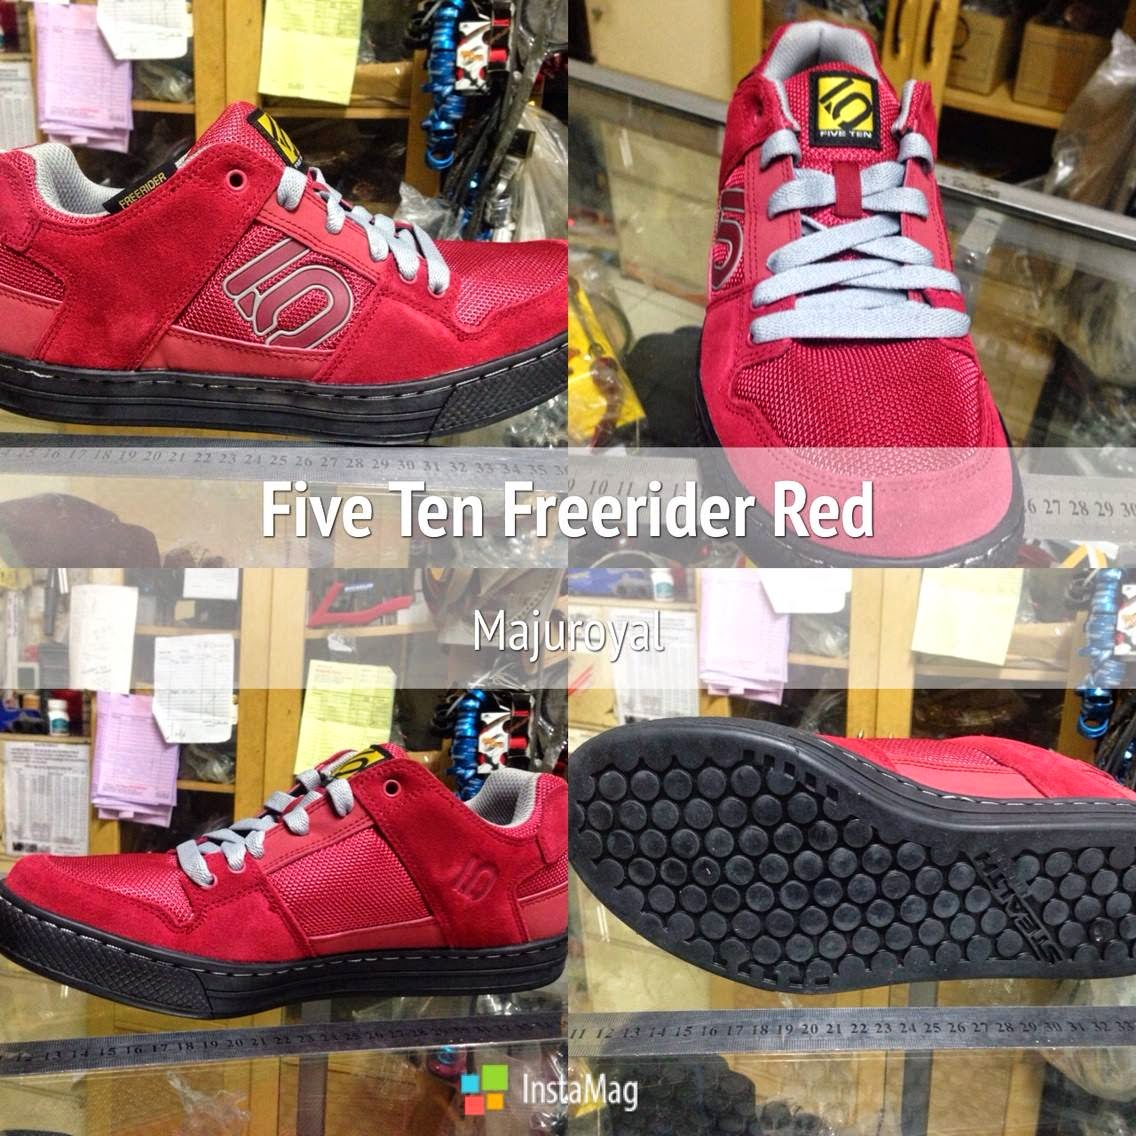 Five Ten Freerider Red